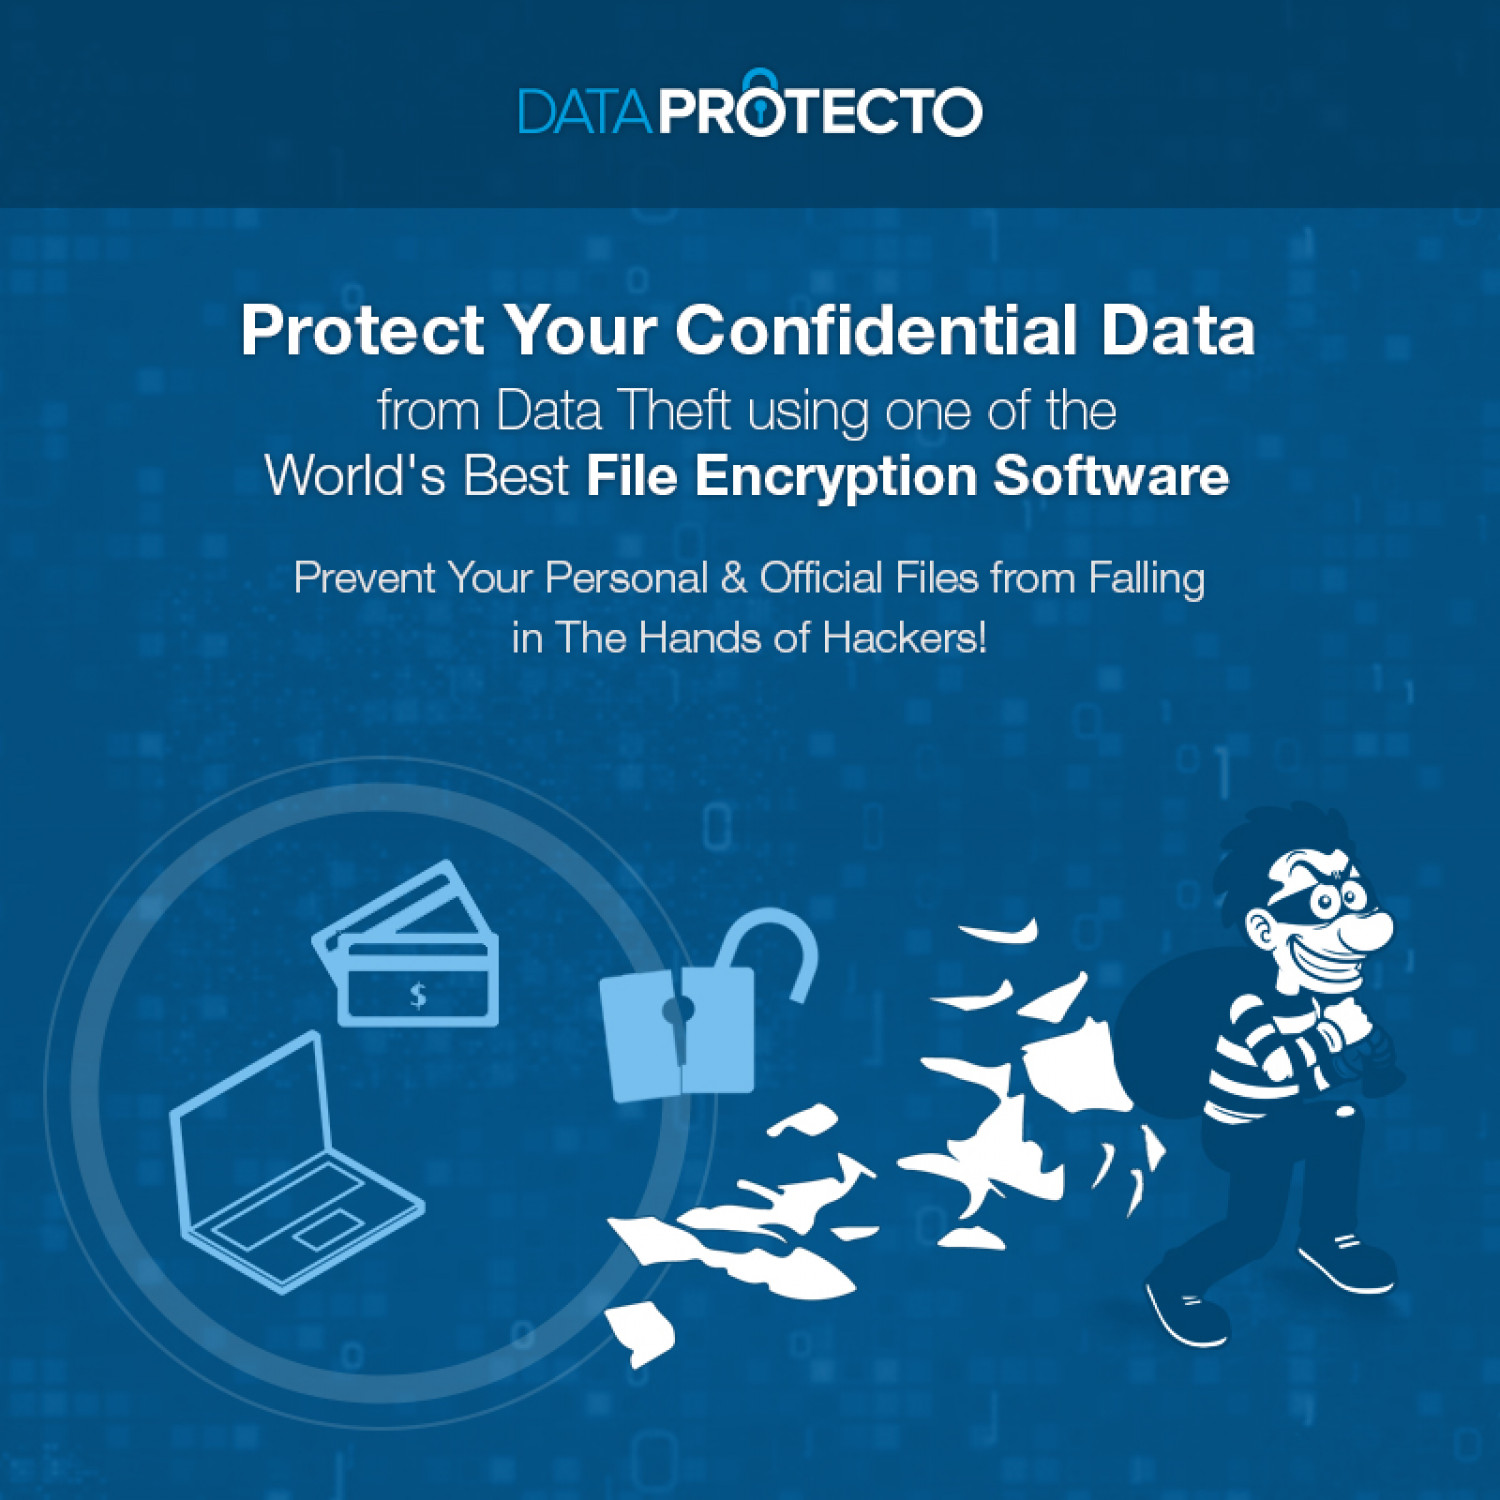 BACKUP YOUR PRECIOUS DATA WITH DATA PROTECTO  Infographic